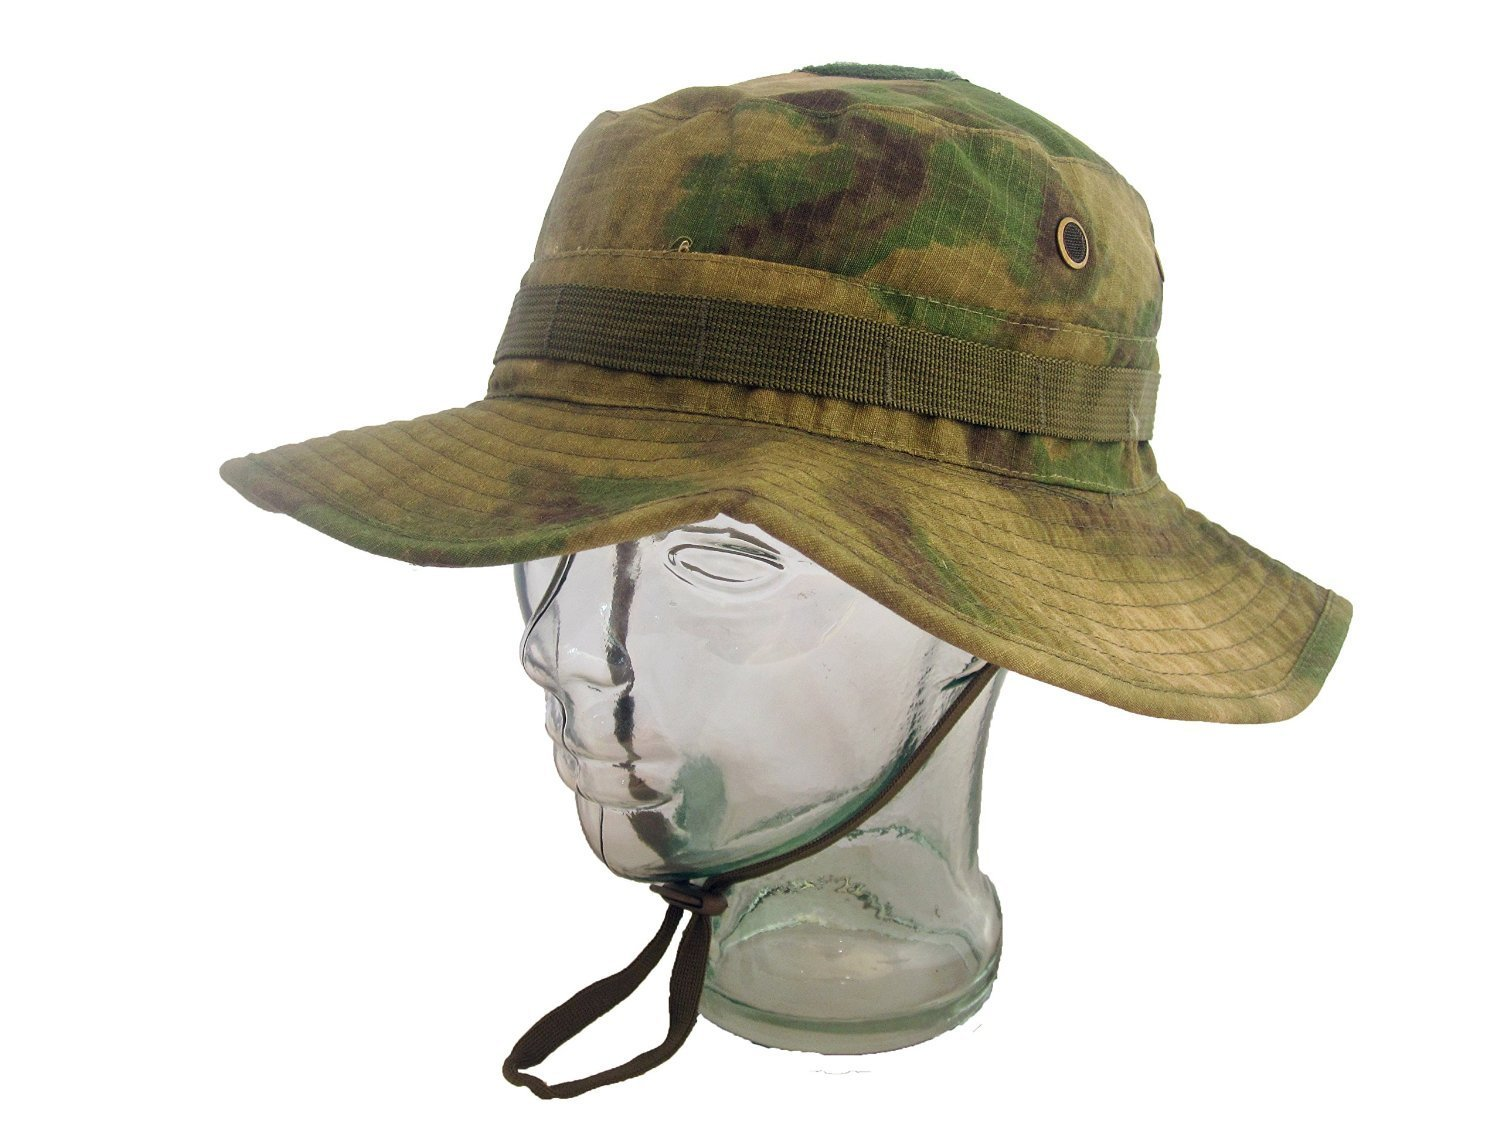 Buy DLP Tactical Ripstop Camo Boonie Hat in Cheap Price on Alibaba.com 4f0f8bf1fe7c